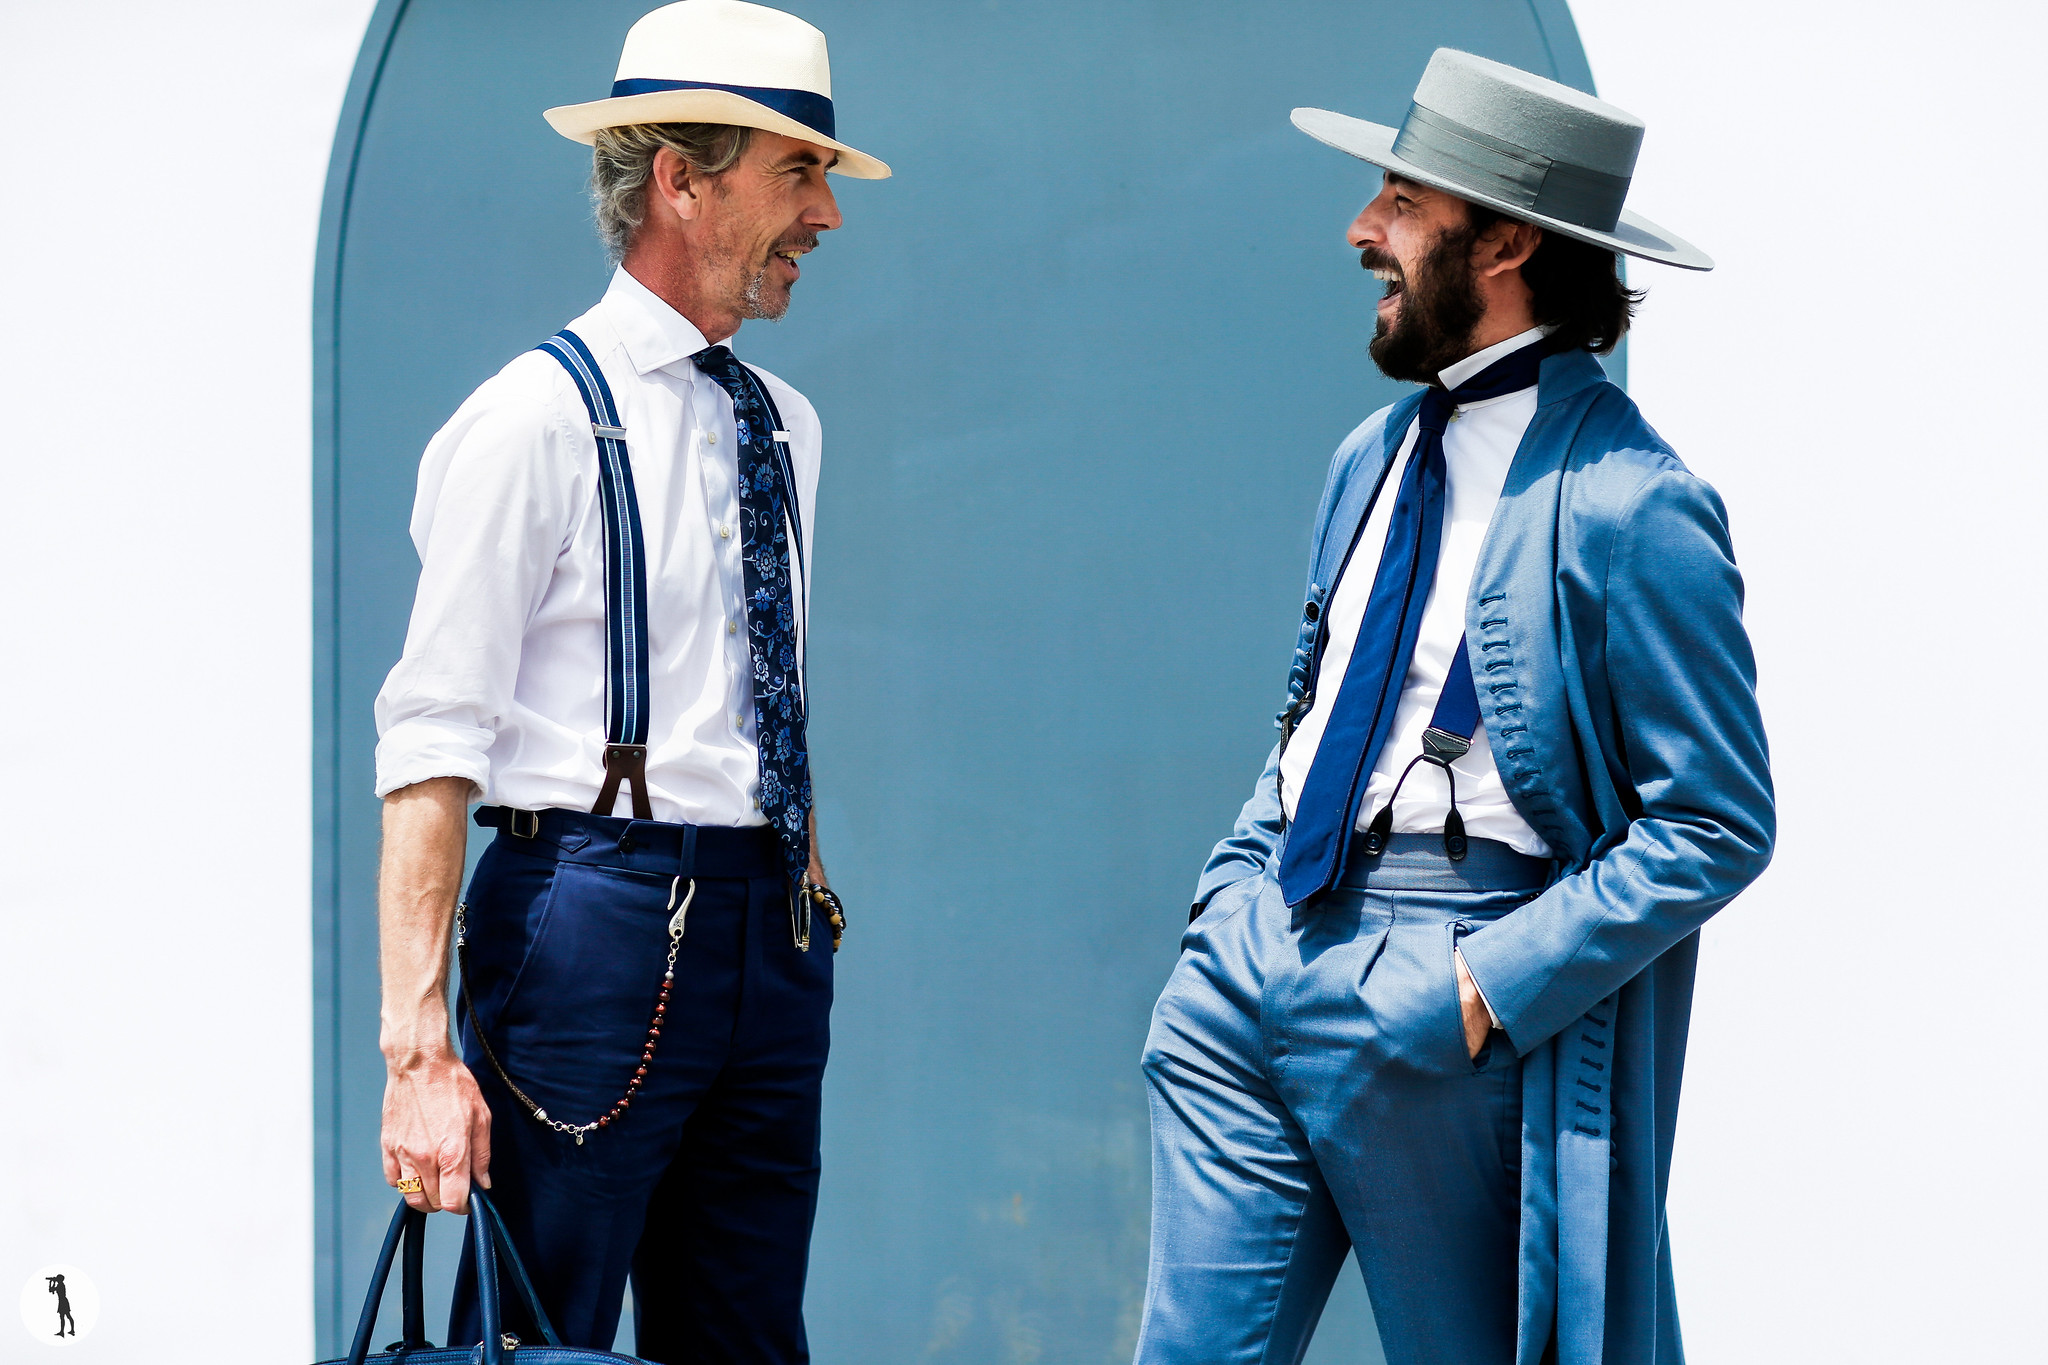 Guillaume Bo and Paul Garcia de Oteyza - Pitti Uomo 90 (1)